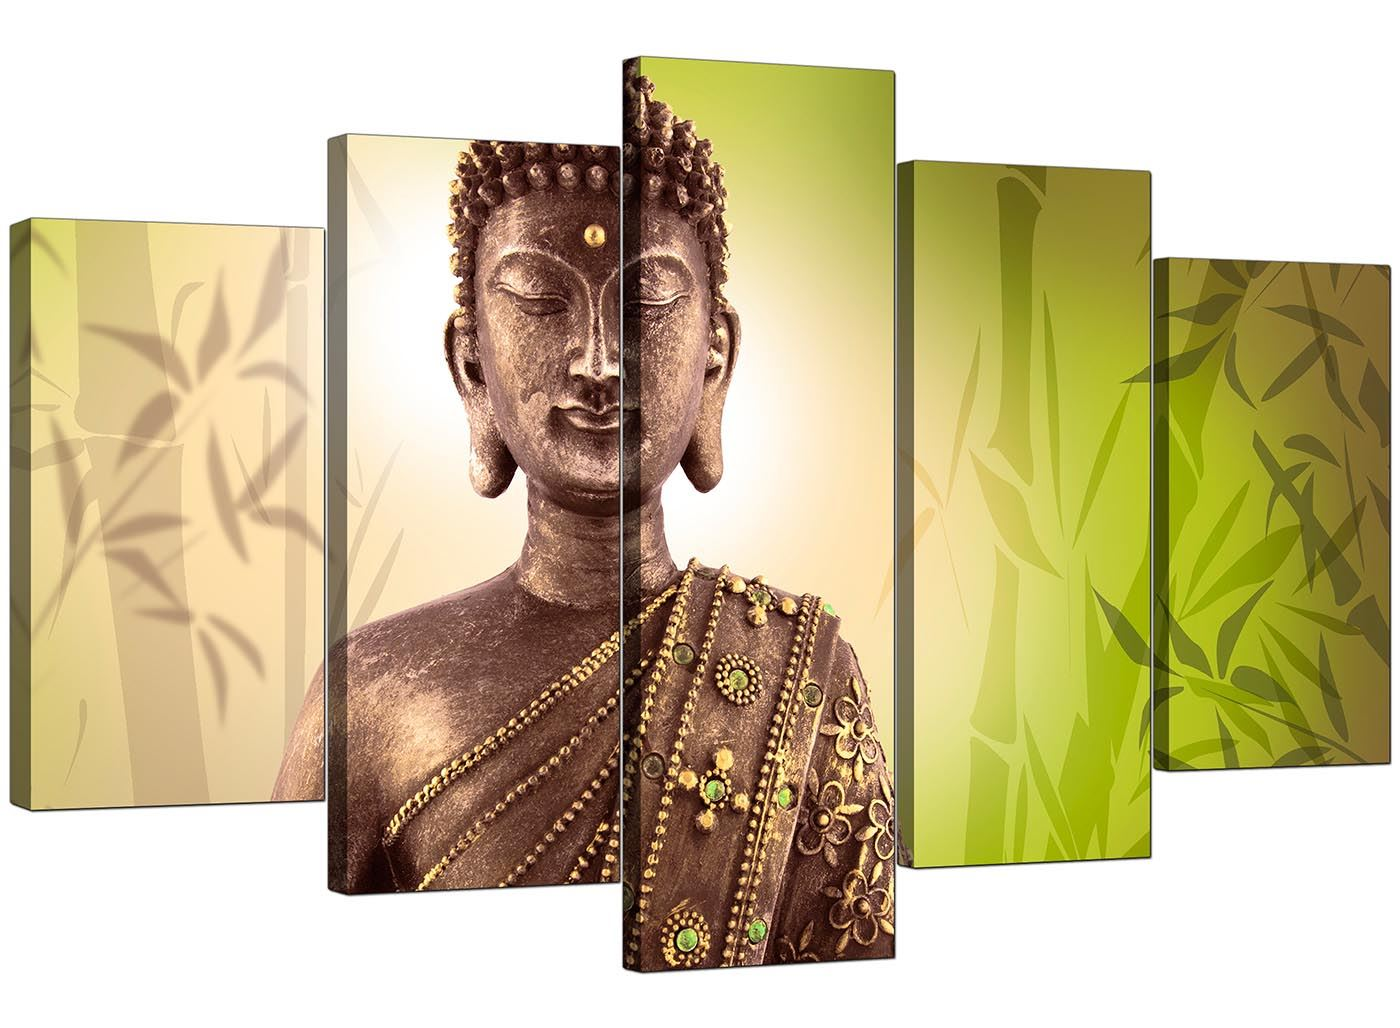 Details about 5 part buddha canvas pictures lime green wall art bedroom prints 5100